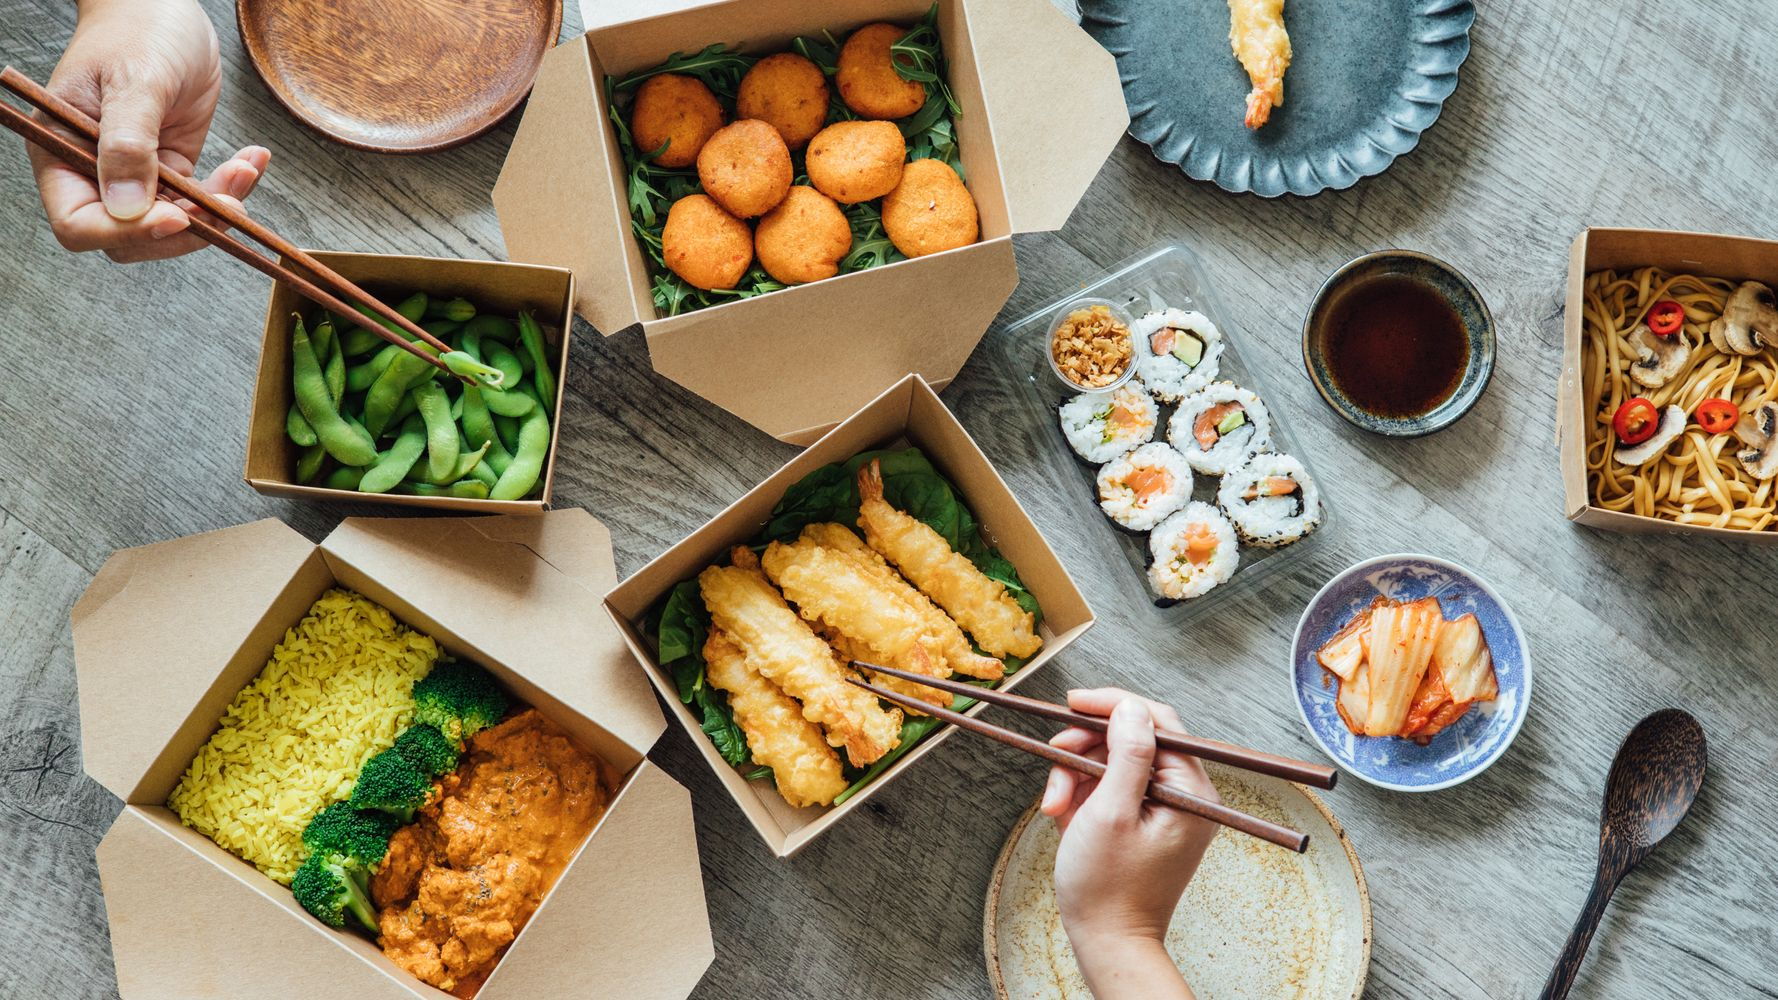 The Do's And Don'ts Of Recycling Takeout Containers